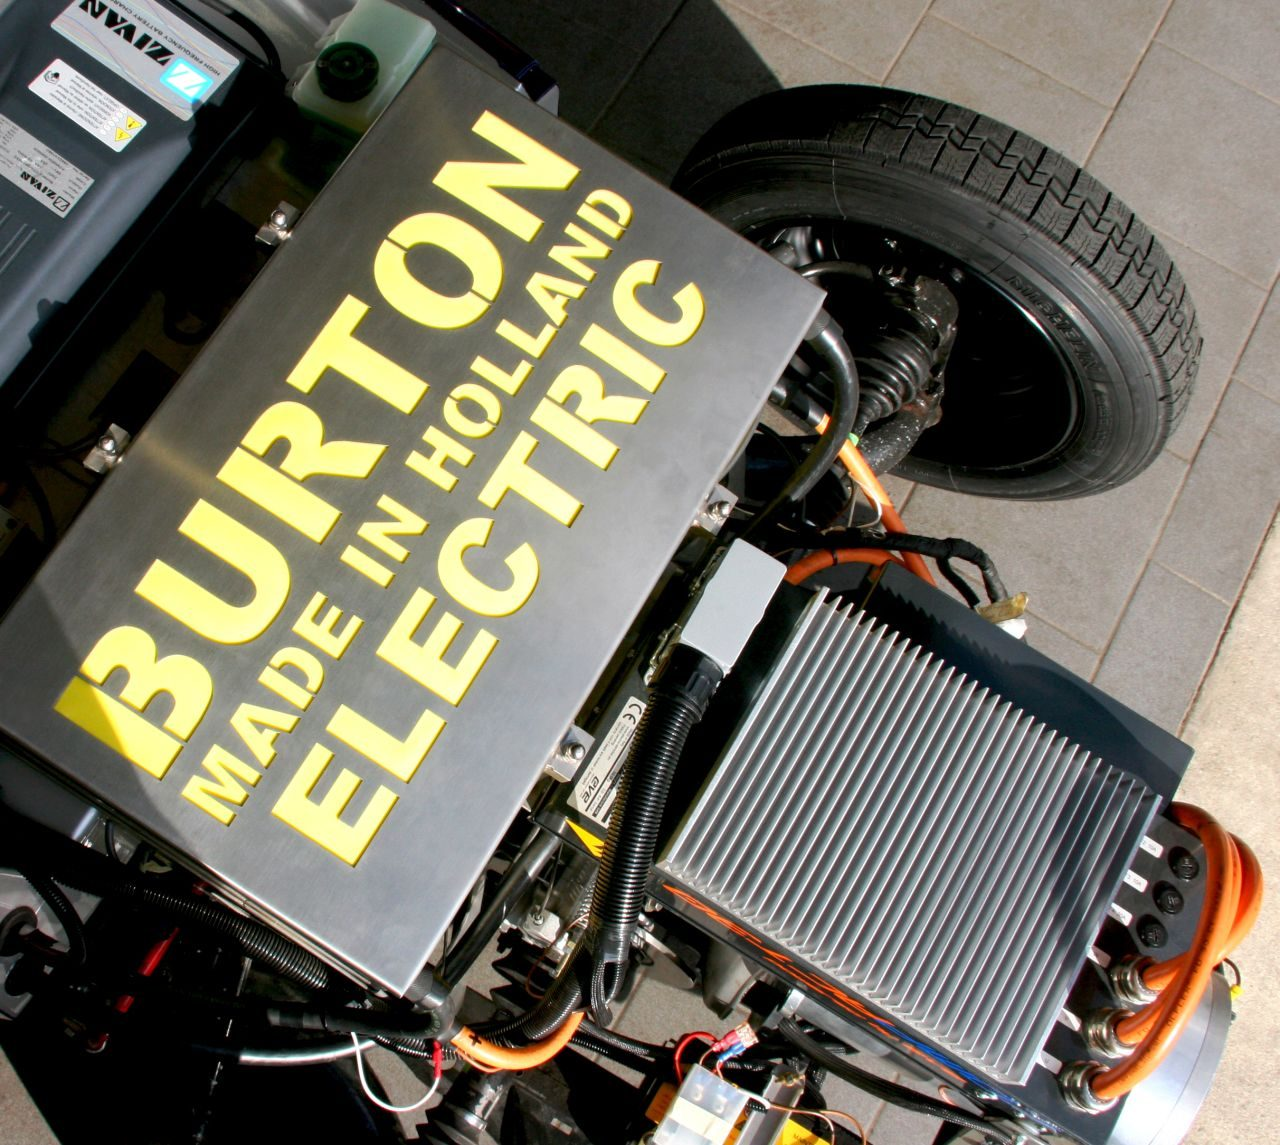 Divers burton electric afbeeldingen for Burton bmw mercedes benz